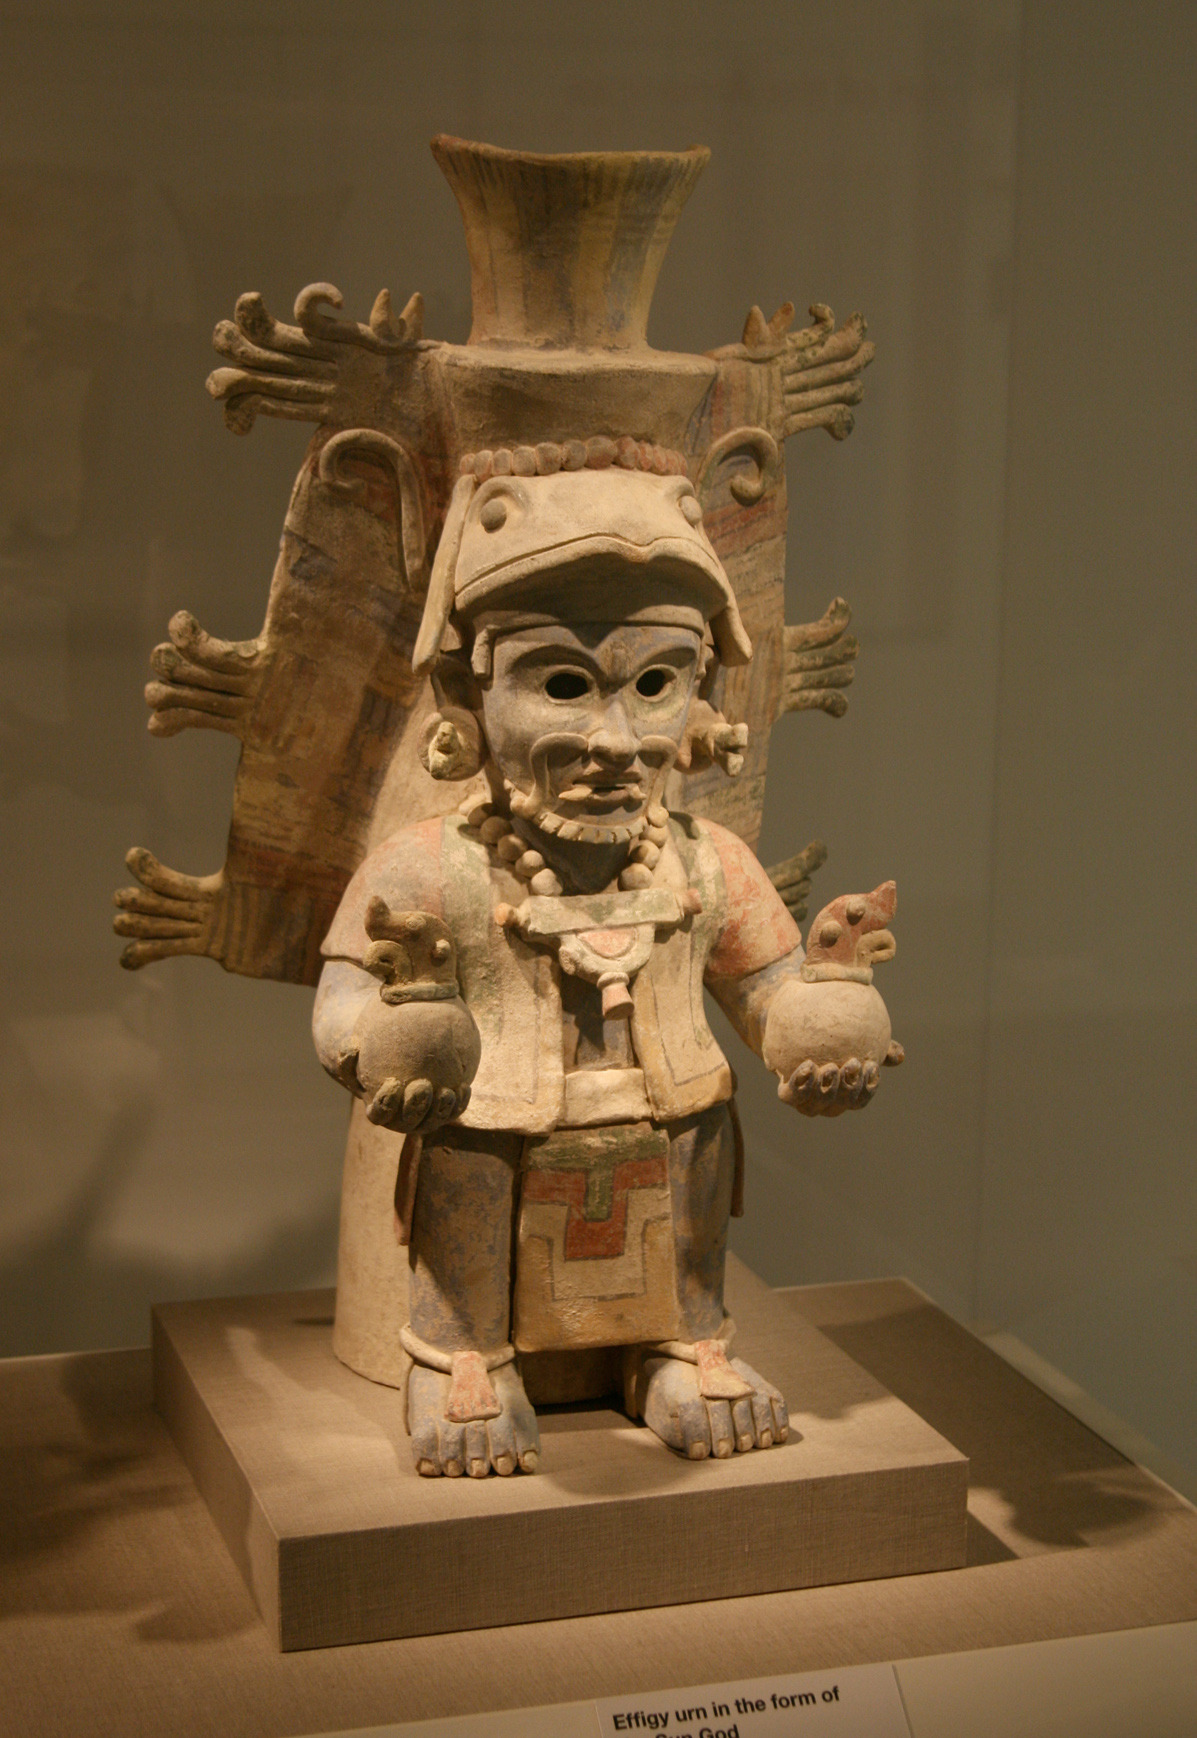 Ancient Mayan Effigy urn in the form of Chac, the Rain God. Courtesy & currently located at the San Francisco deYoung museum. Photo taken by Leonard G.